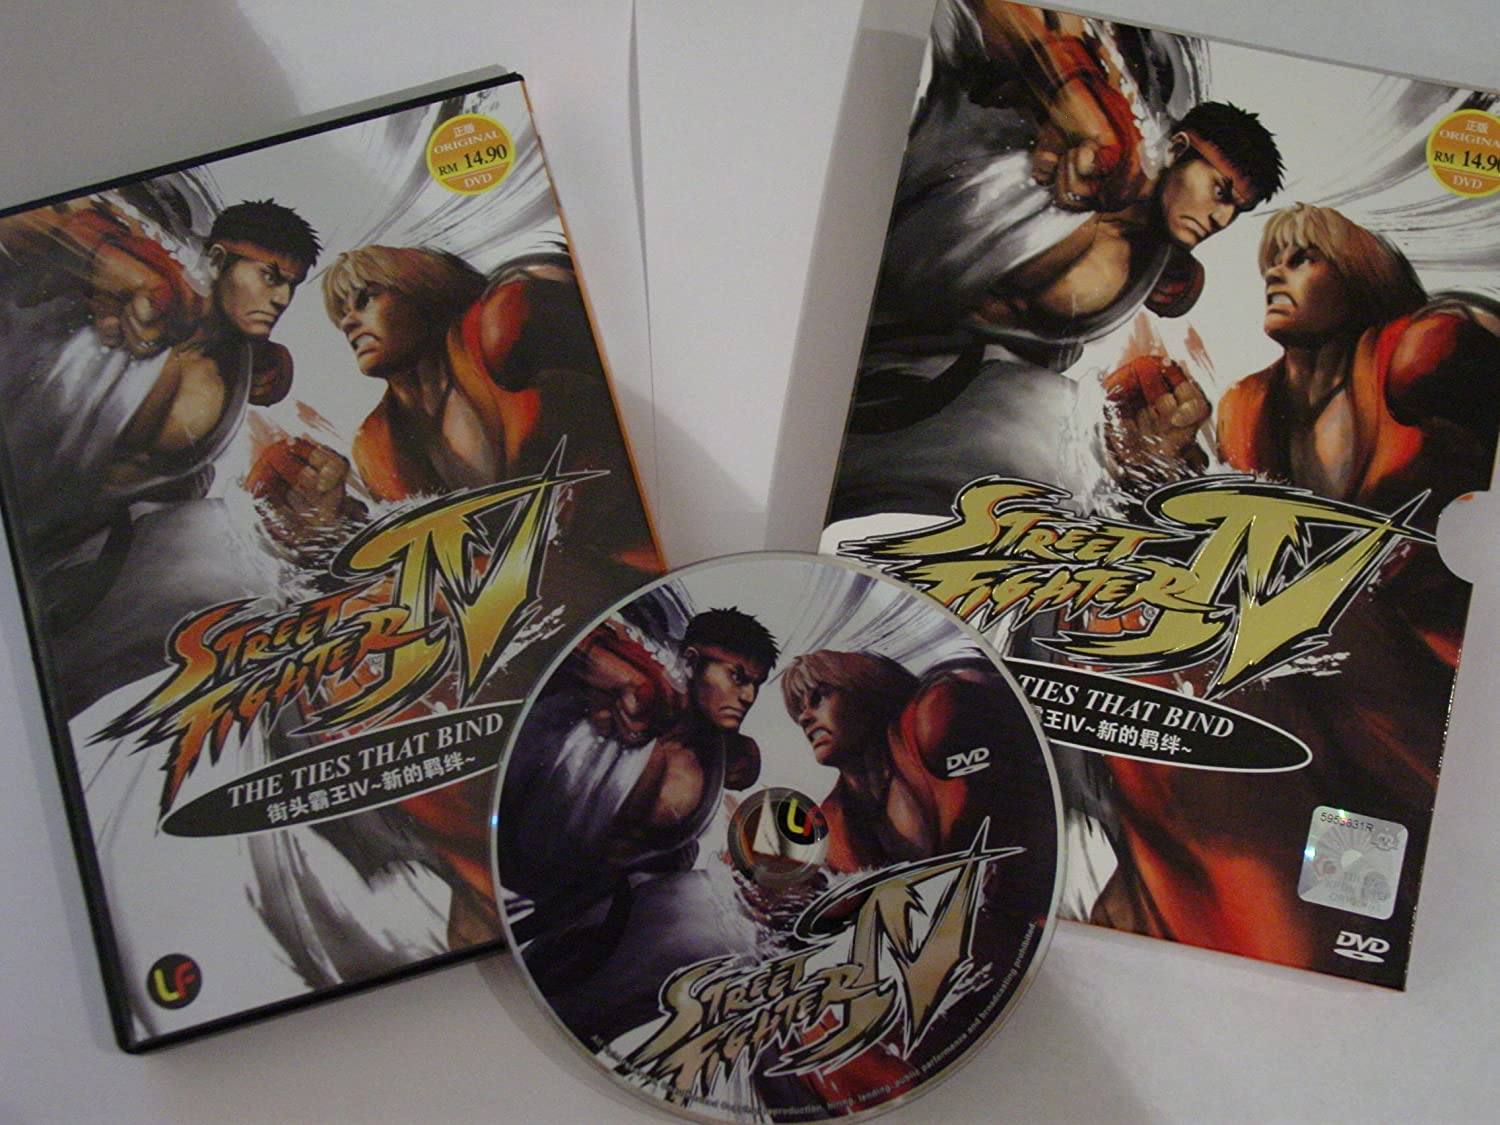 Amazon Com Street Fighter Iv The Ties That Bind Oav Complete Box Set Dvd Movies Tv